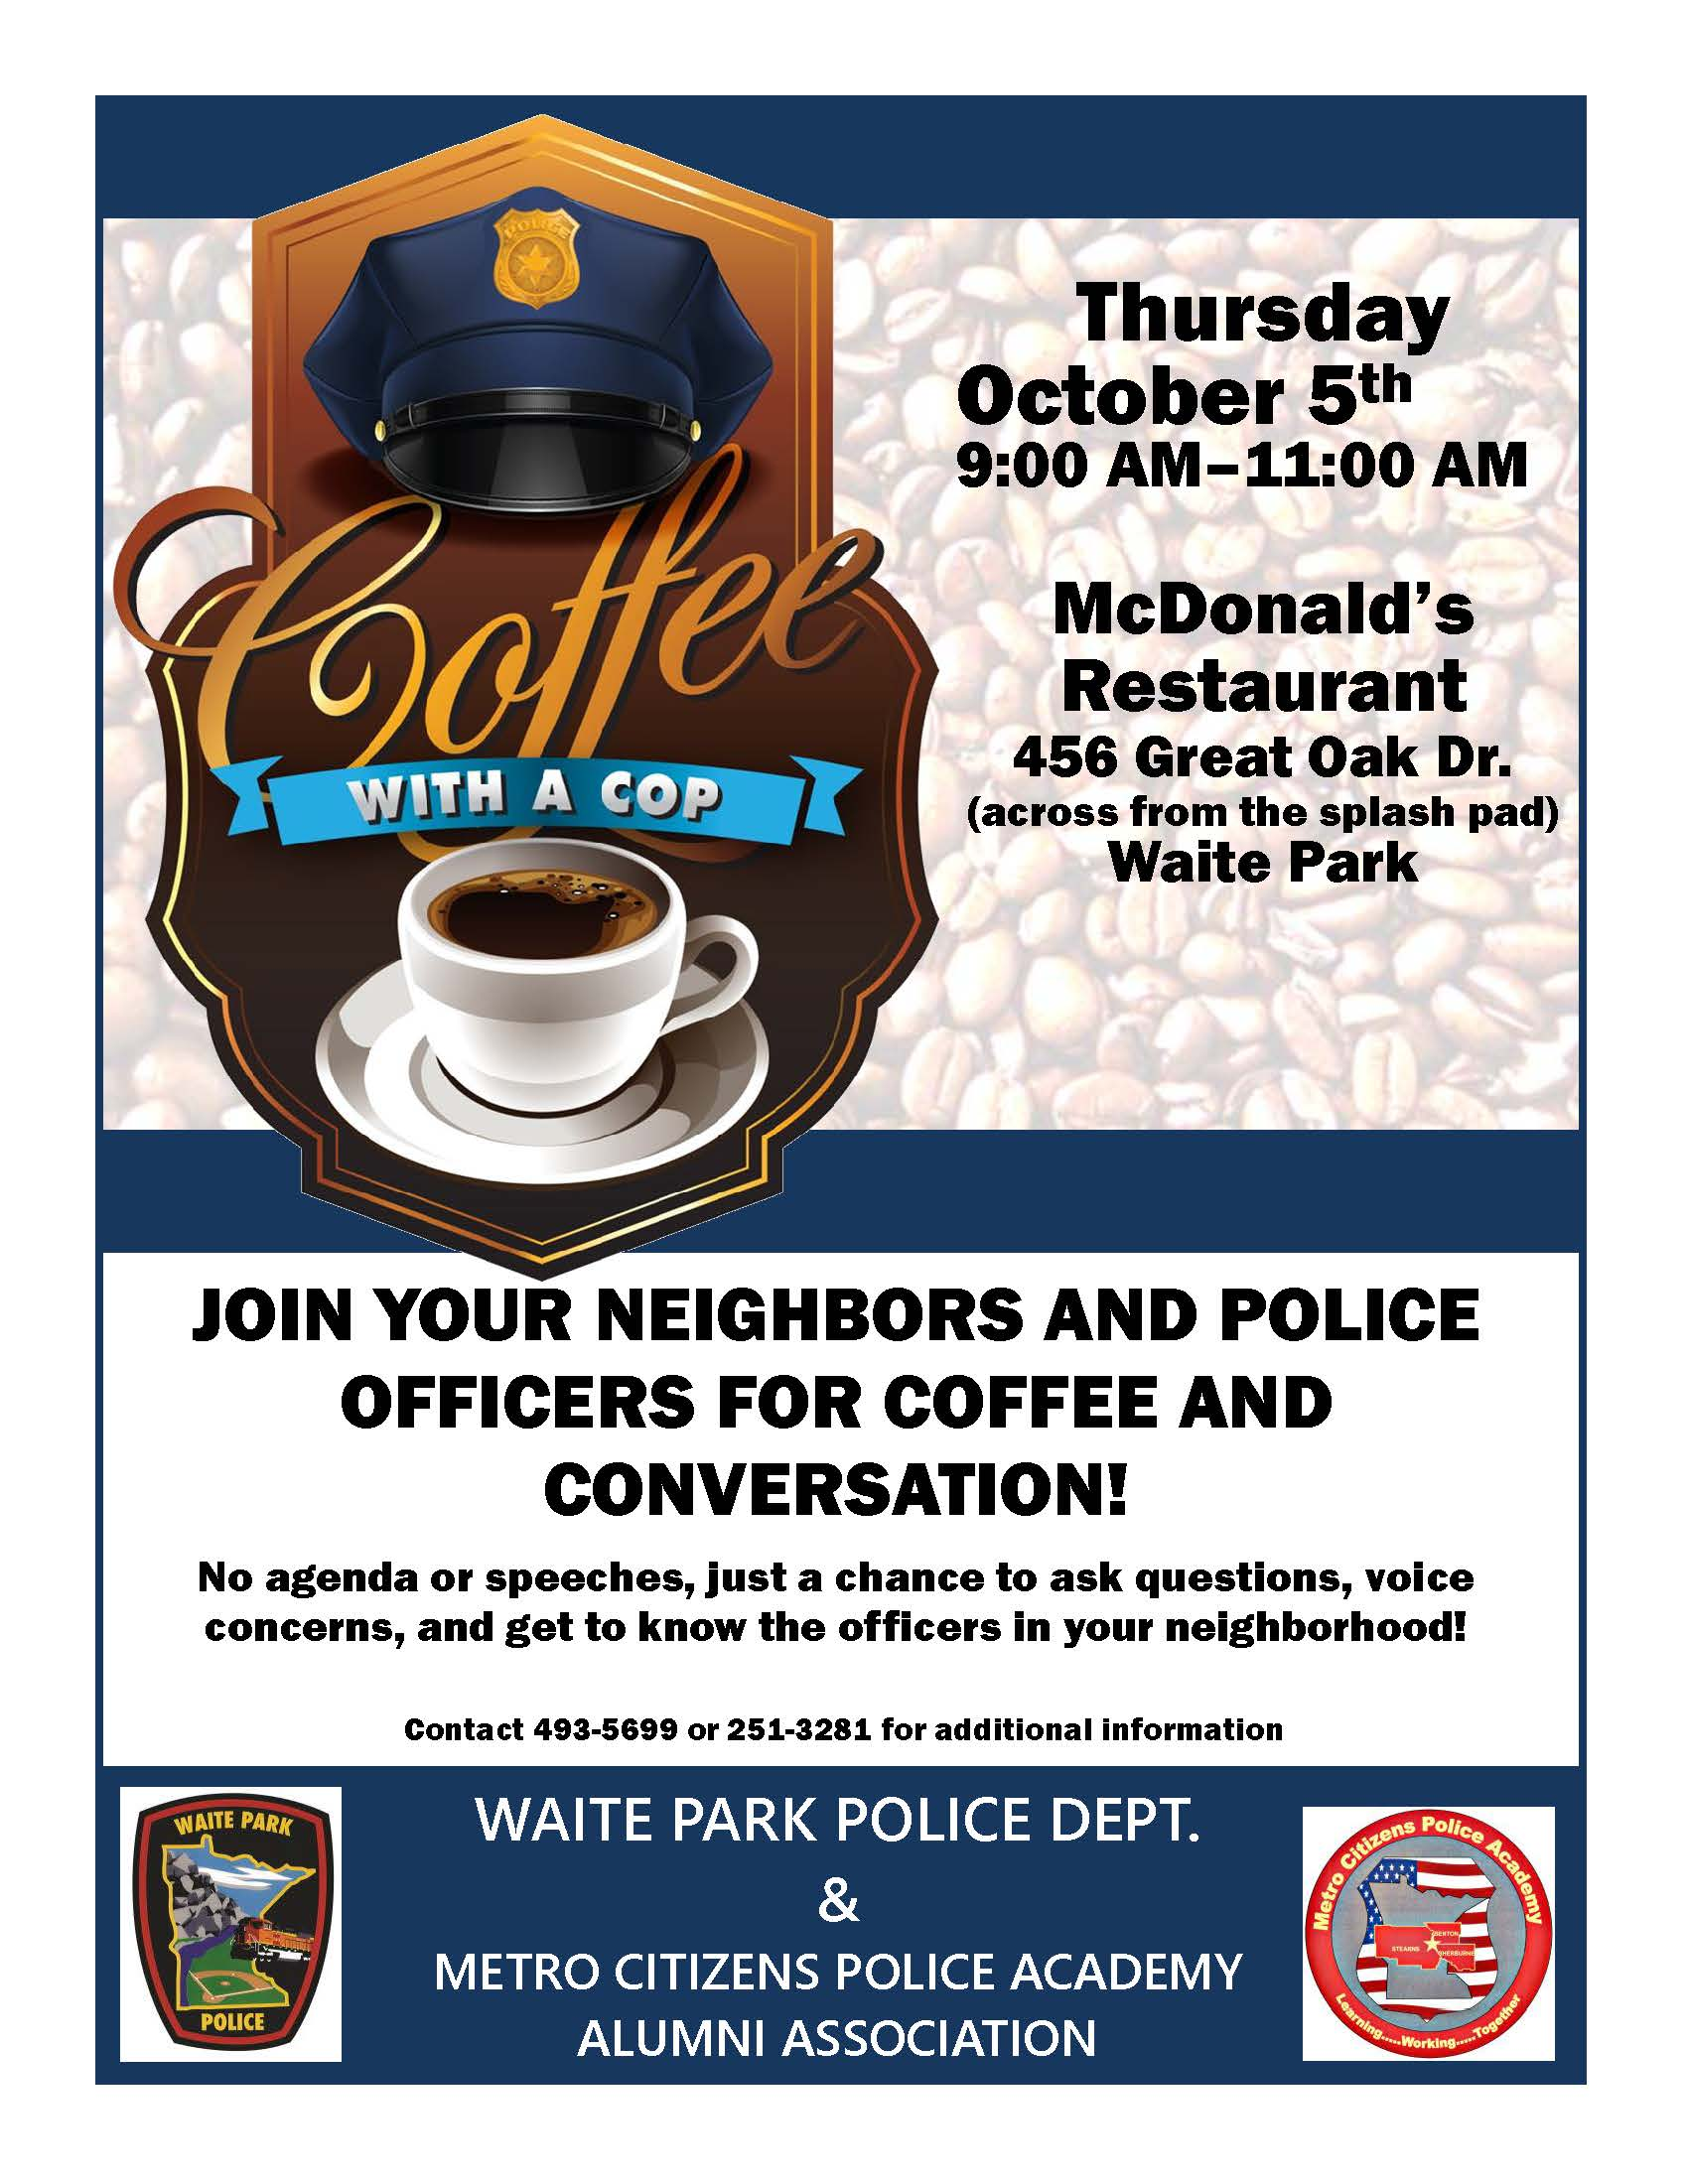 Waite Park Coffee with a Cop Thurs Oct 5, 2017 9-11 am